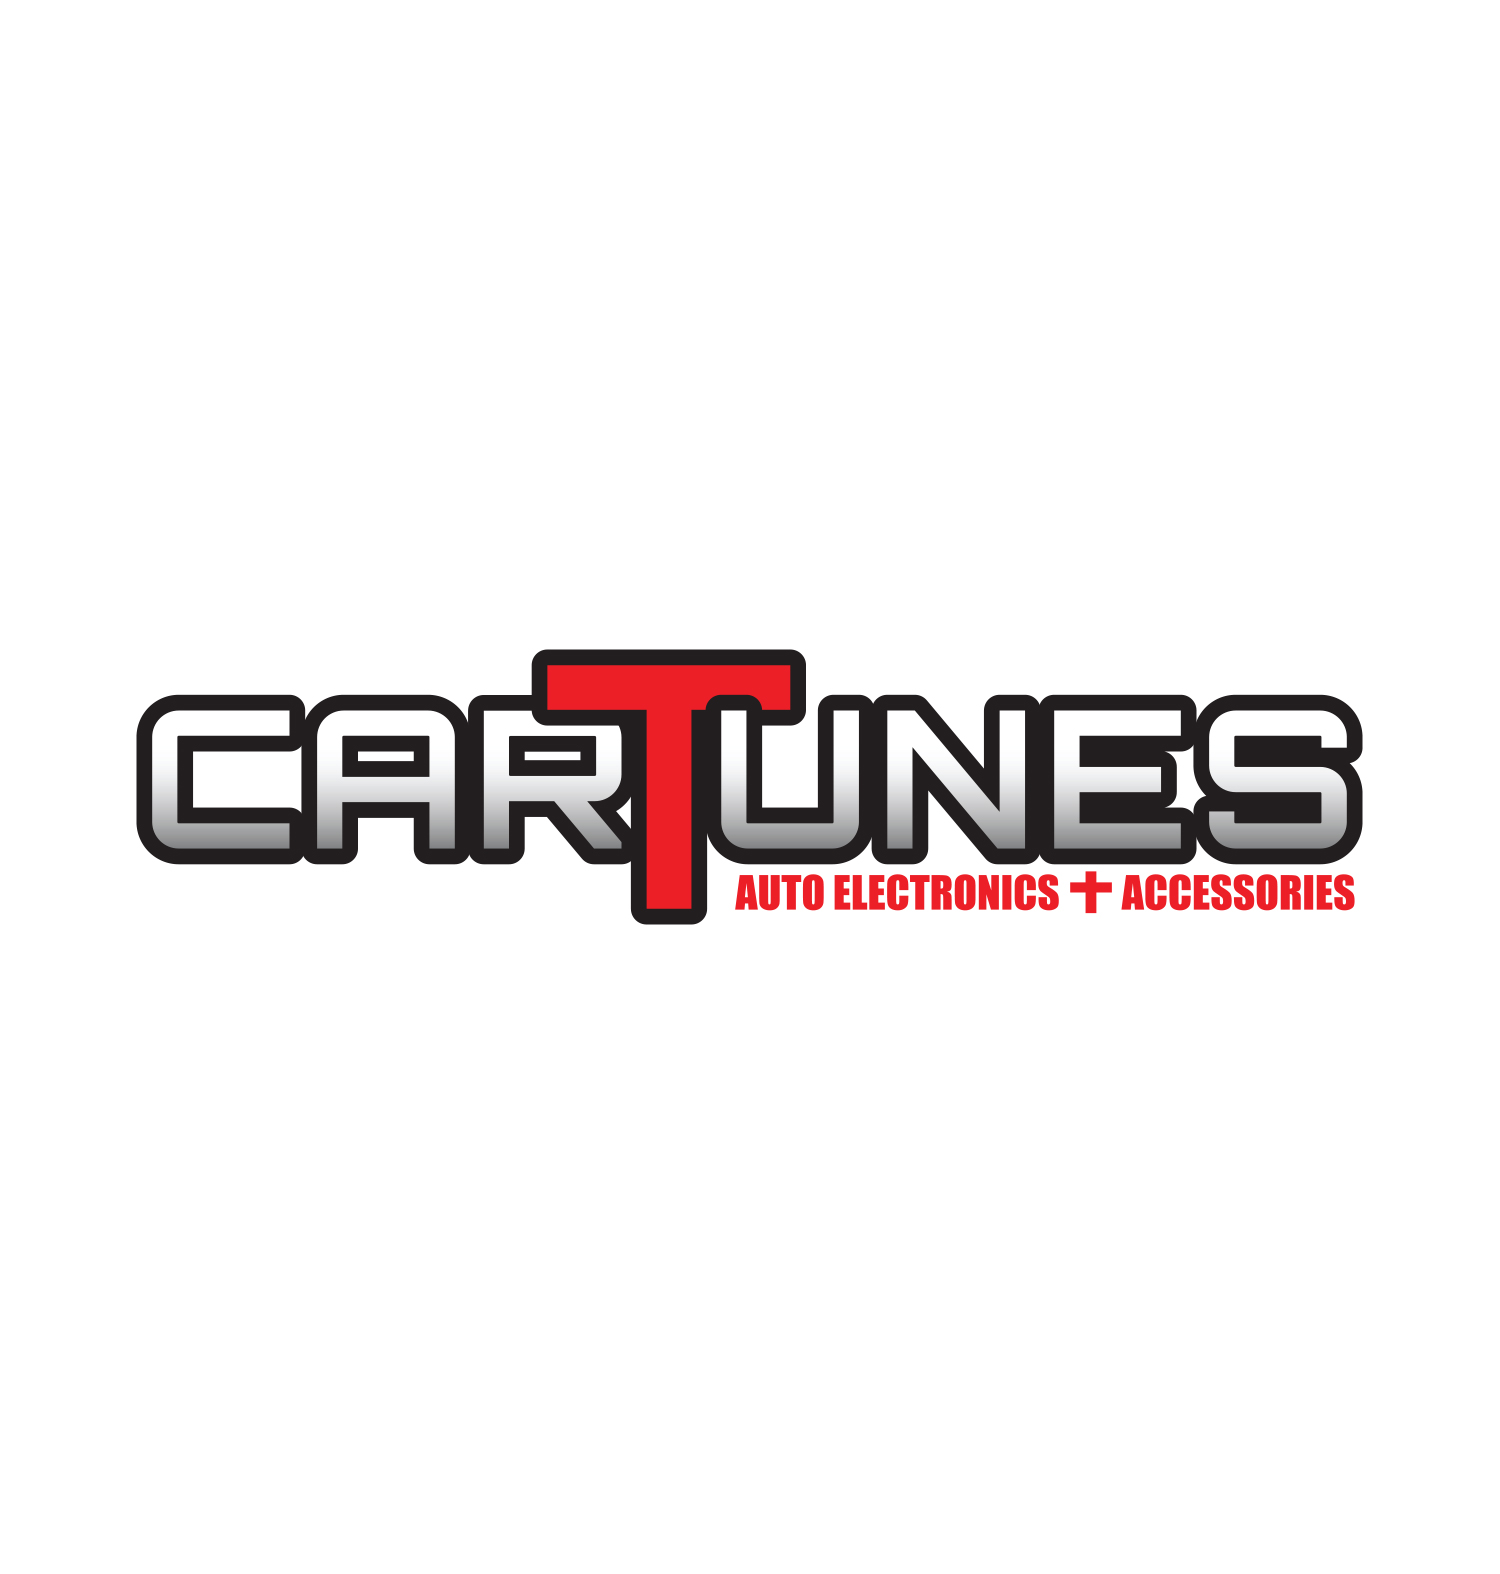 cover_image_cartunes_logo.jpg